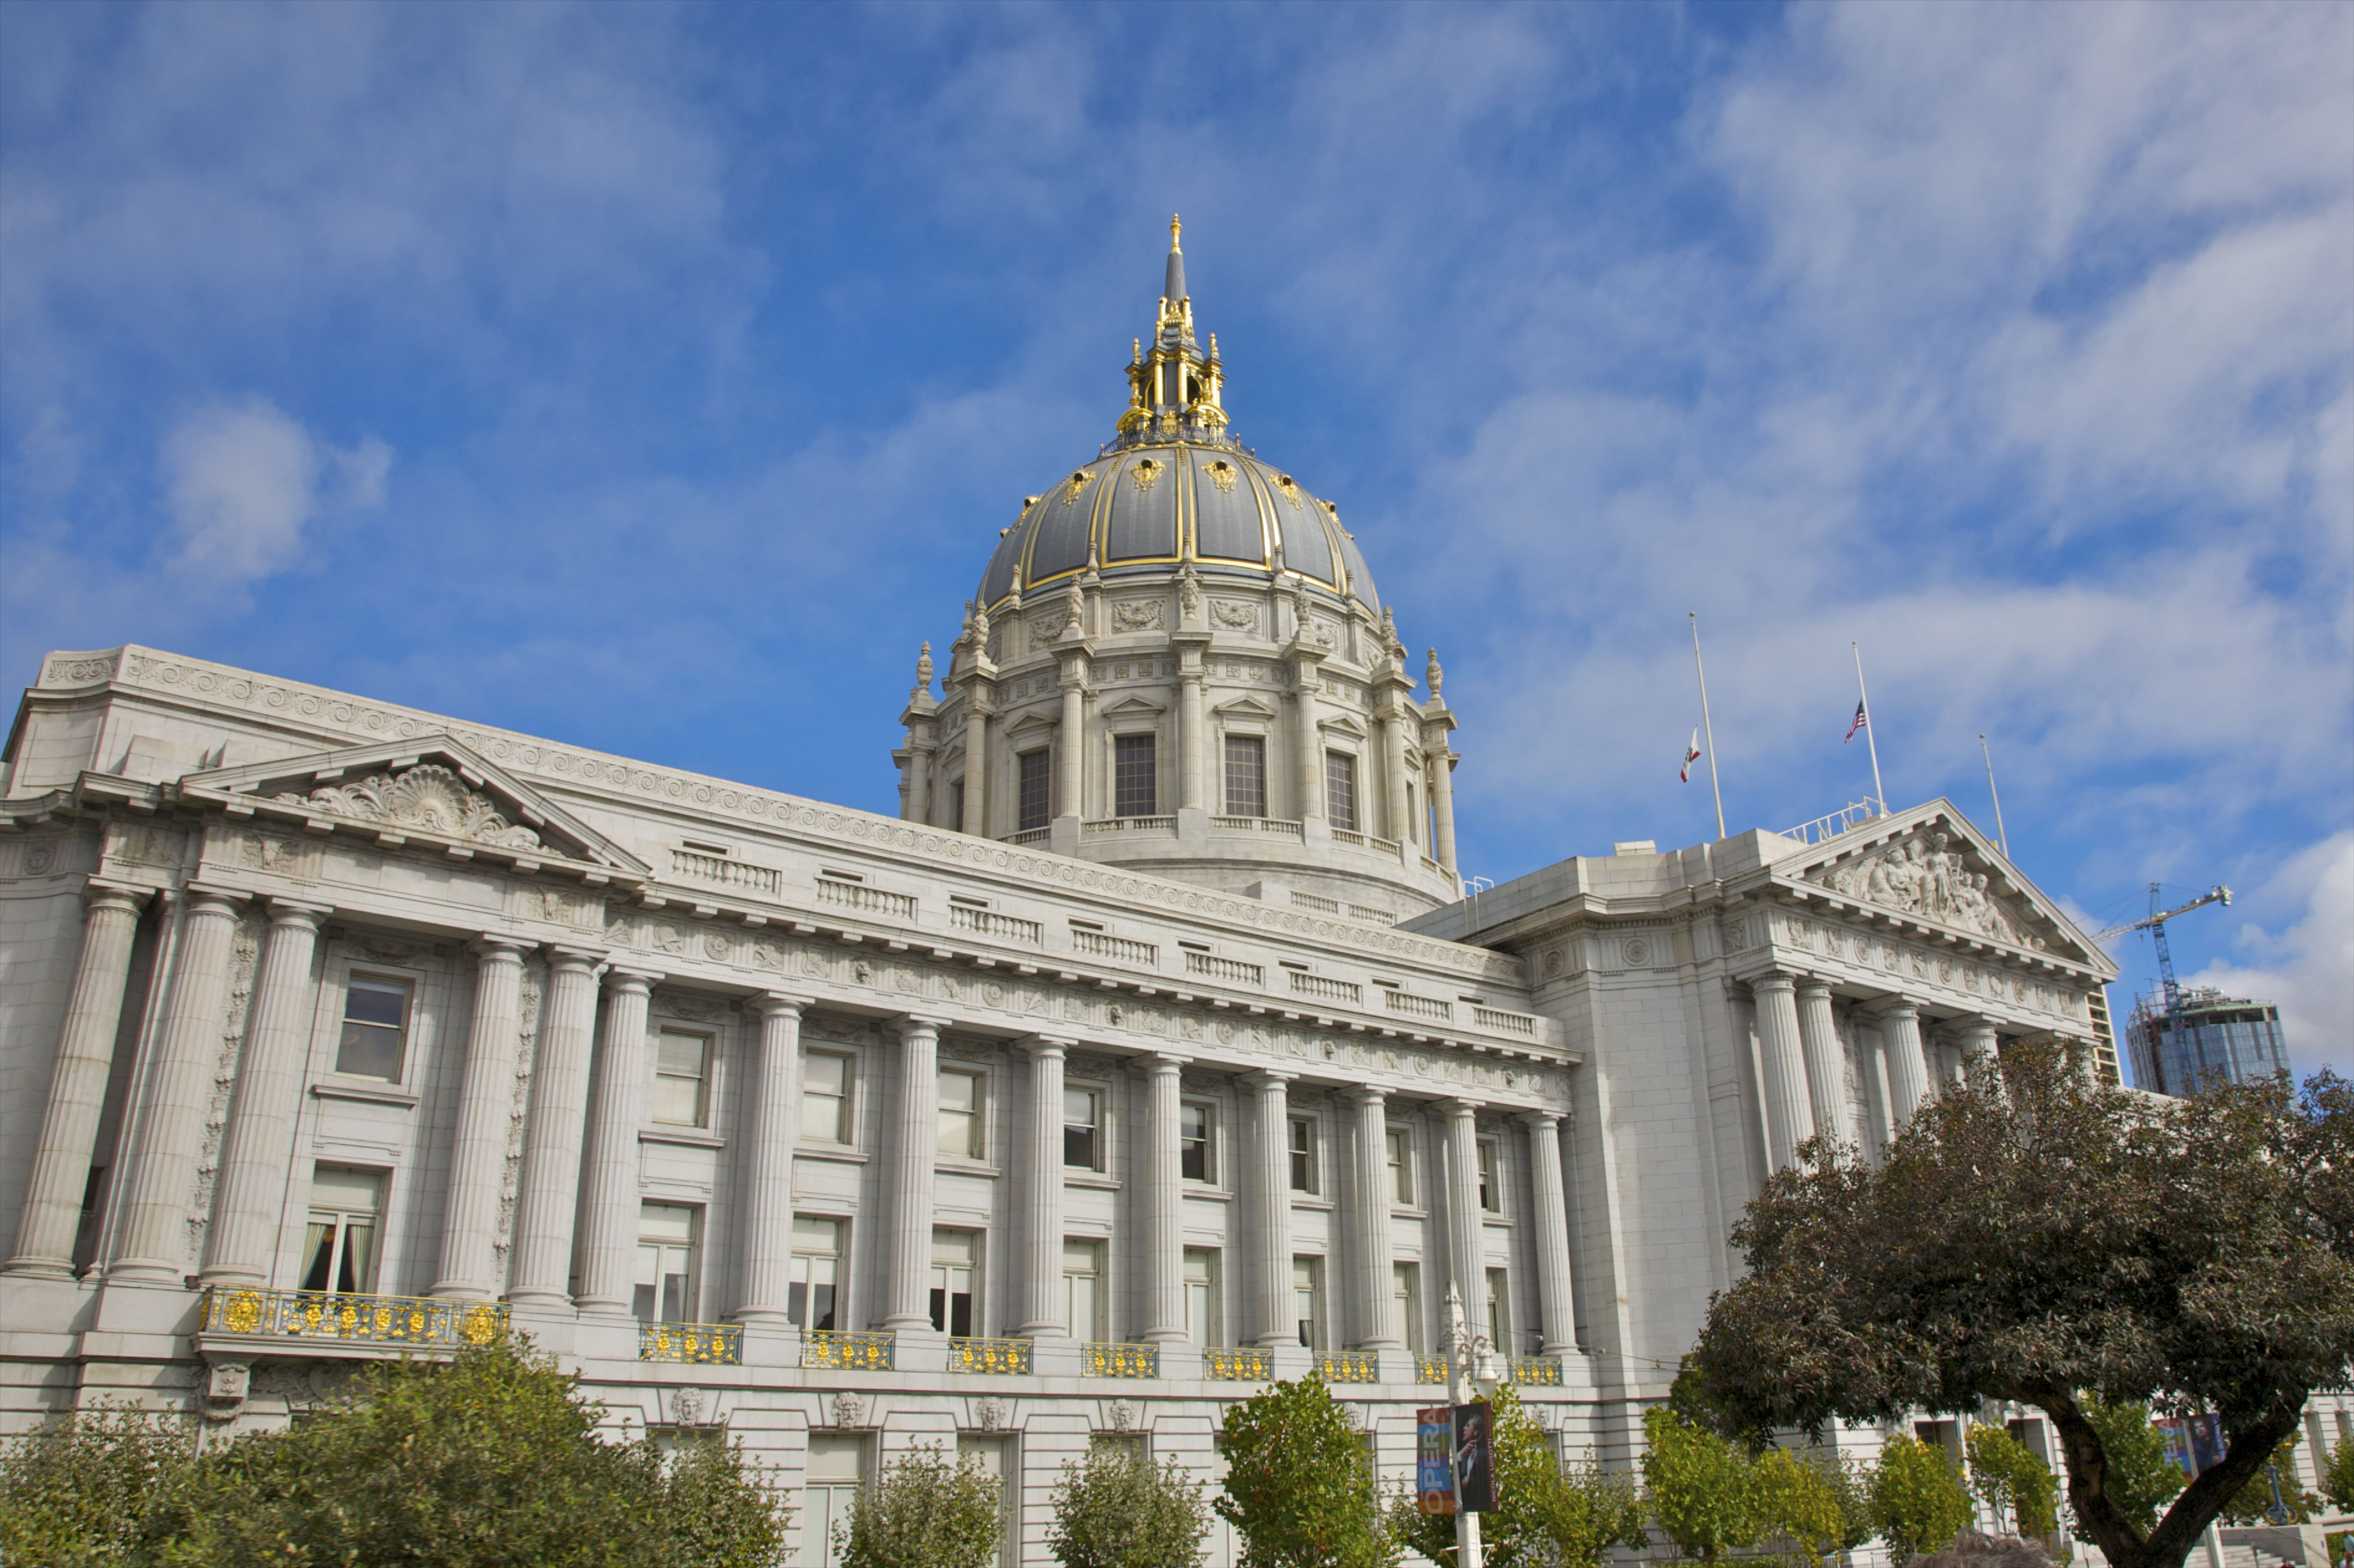 San Francisco's City Hall: Know Before You Go